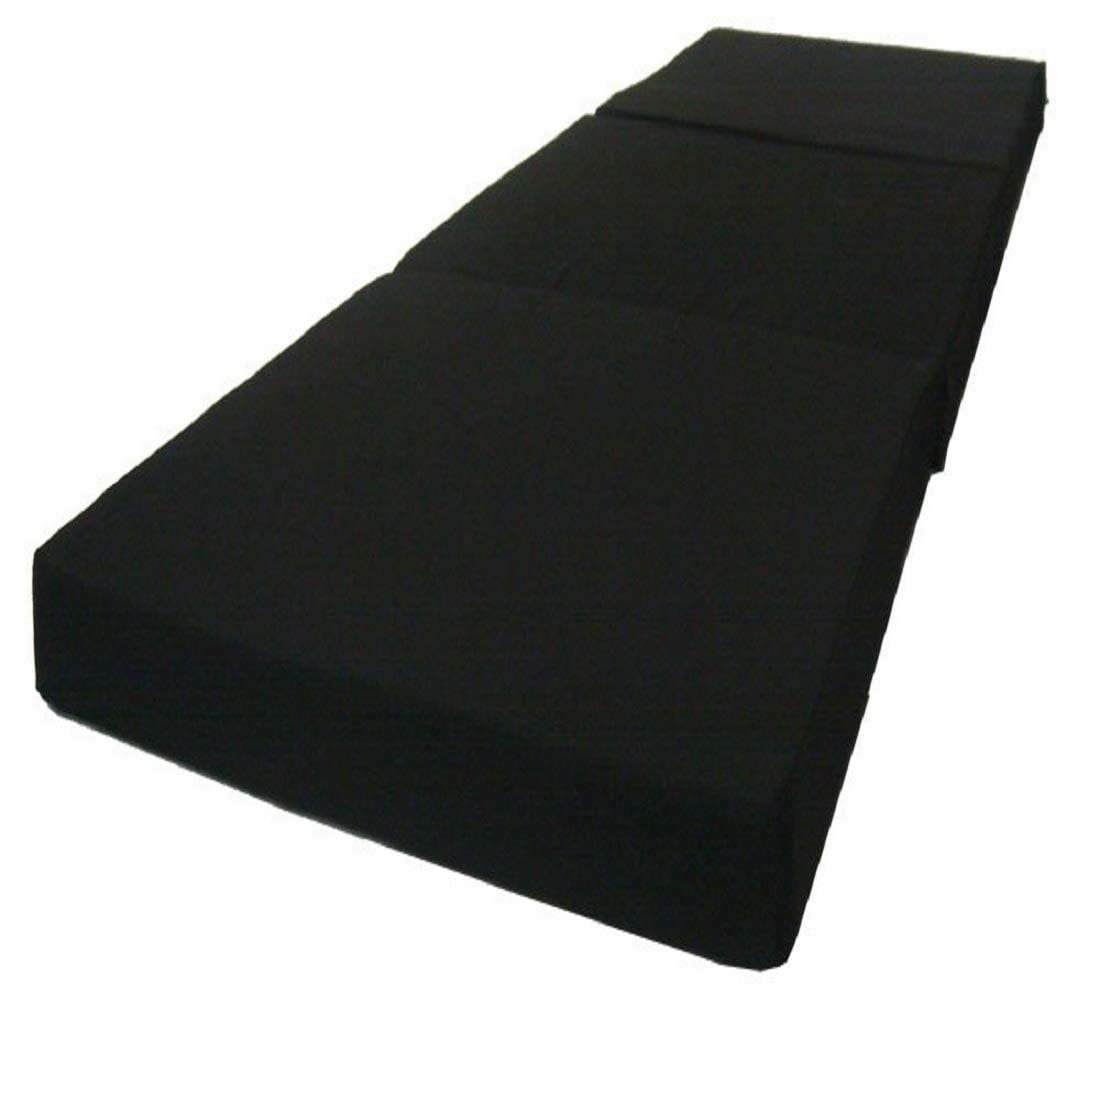 D&D Futon Furniture Folding Mattress Review by www.snoremagazine.com